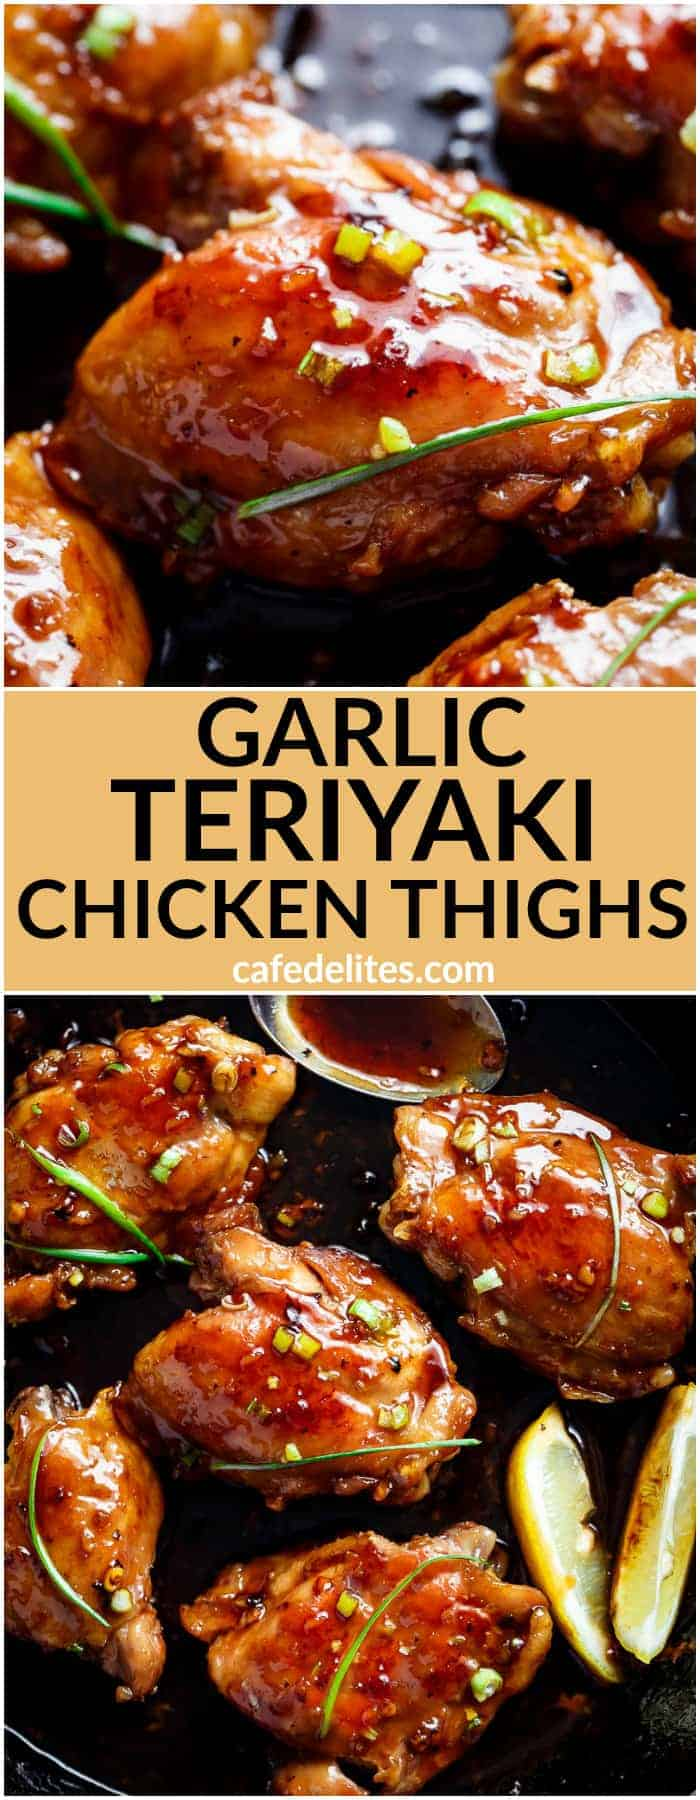 Garlic Teriyaki Chicken Thighs are cooked right on the stove without needing an oven! Better than any store bought teriyaki, this recipe is a family favourite! | https://cafedelites.com